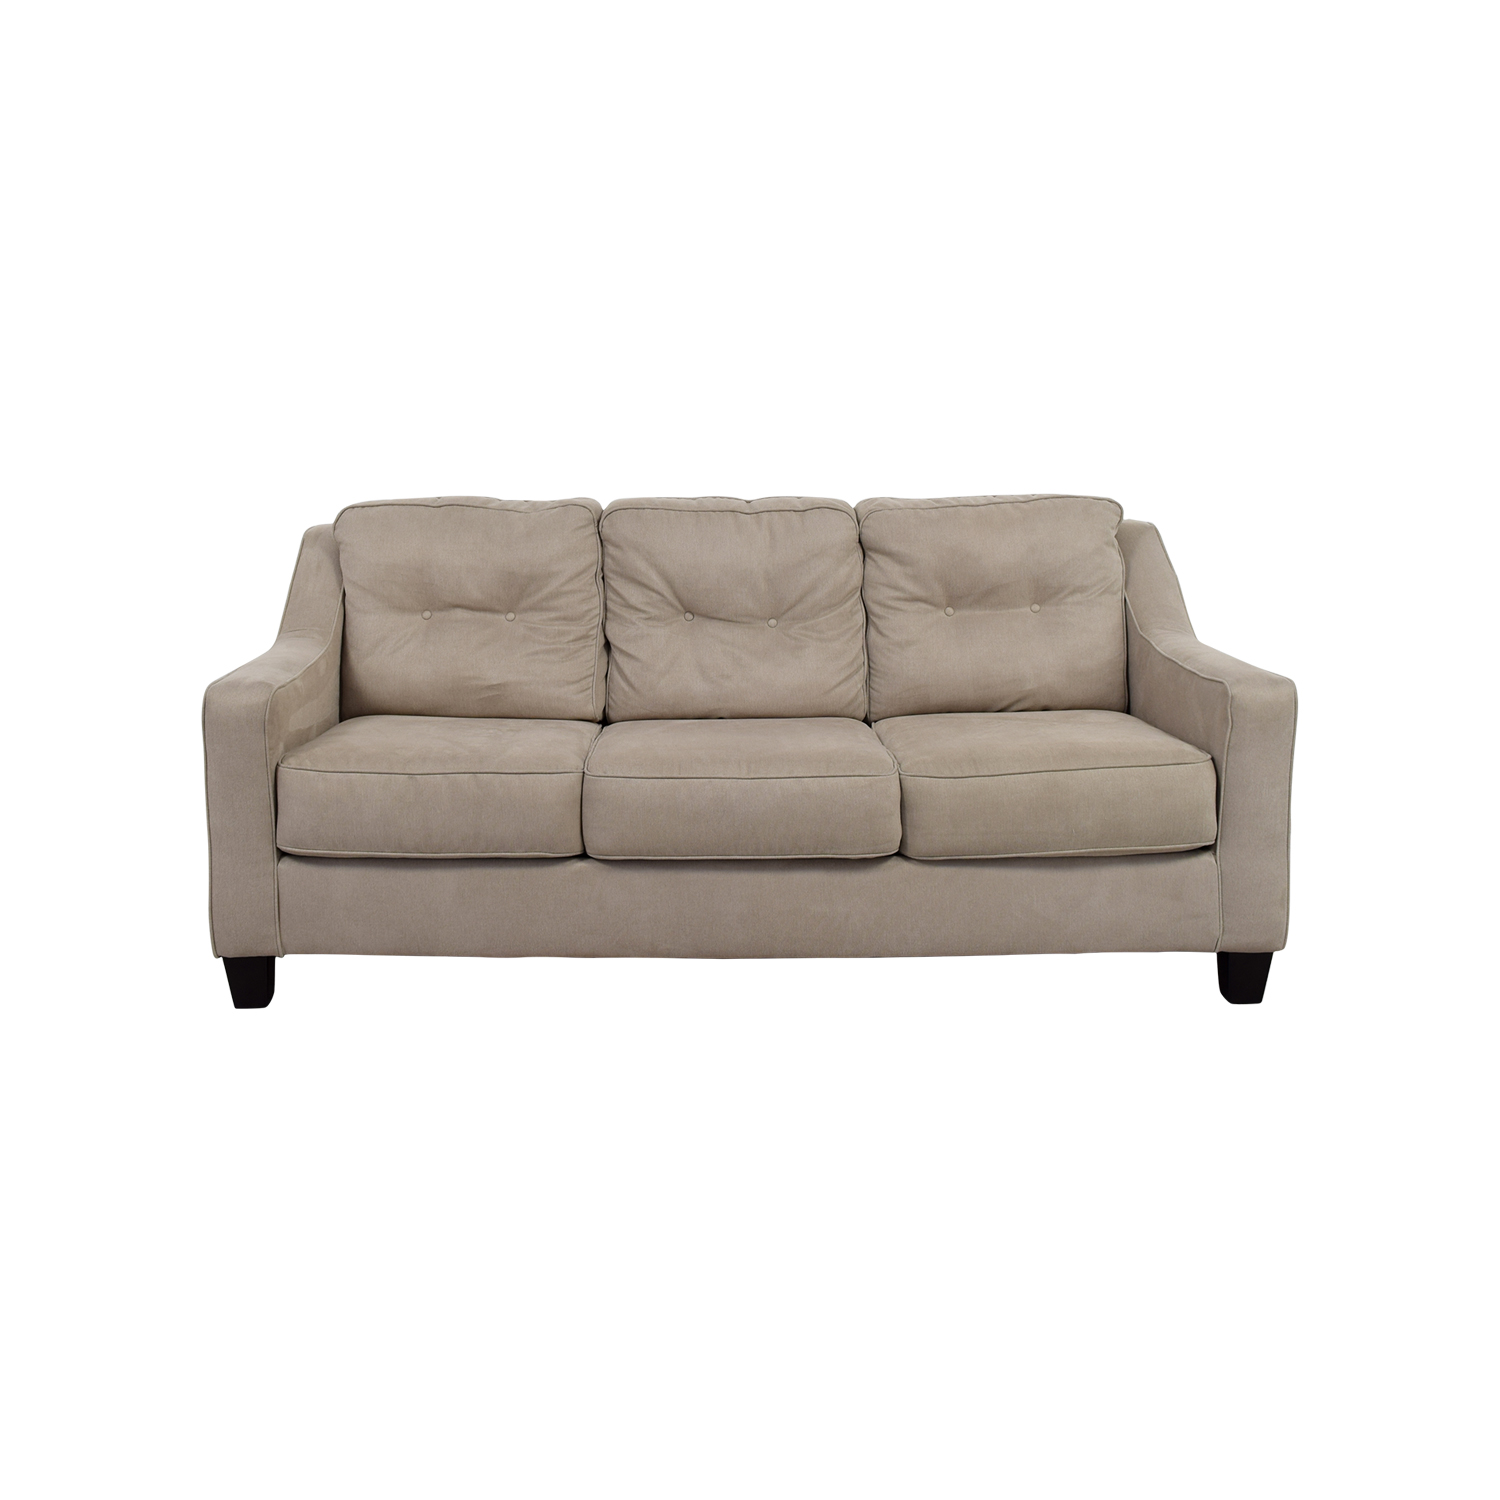 58% OFF Ashley Furniture Ashley Furniture Beige Three Cushion